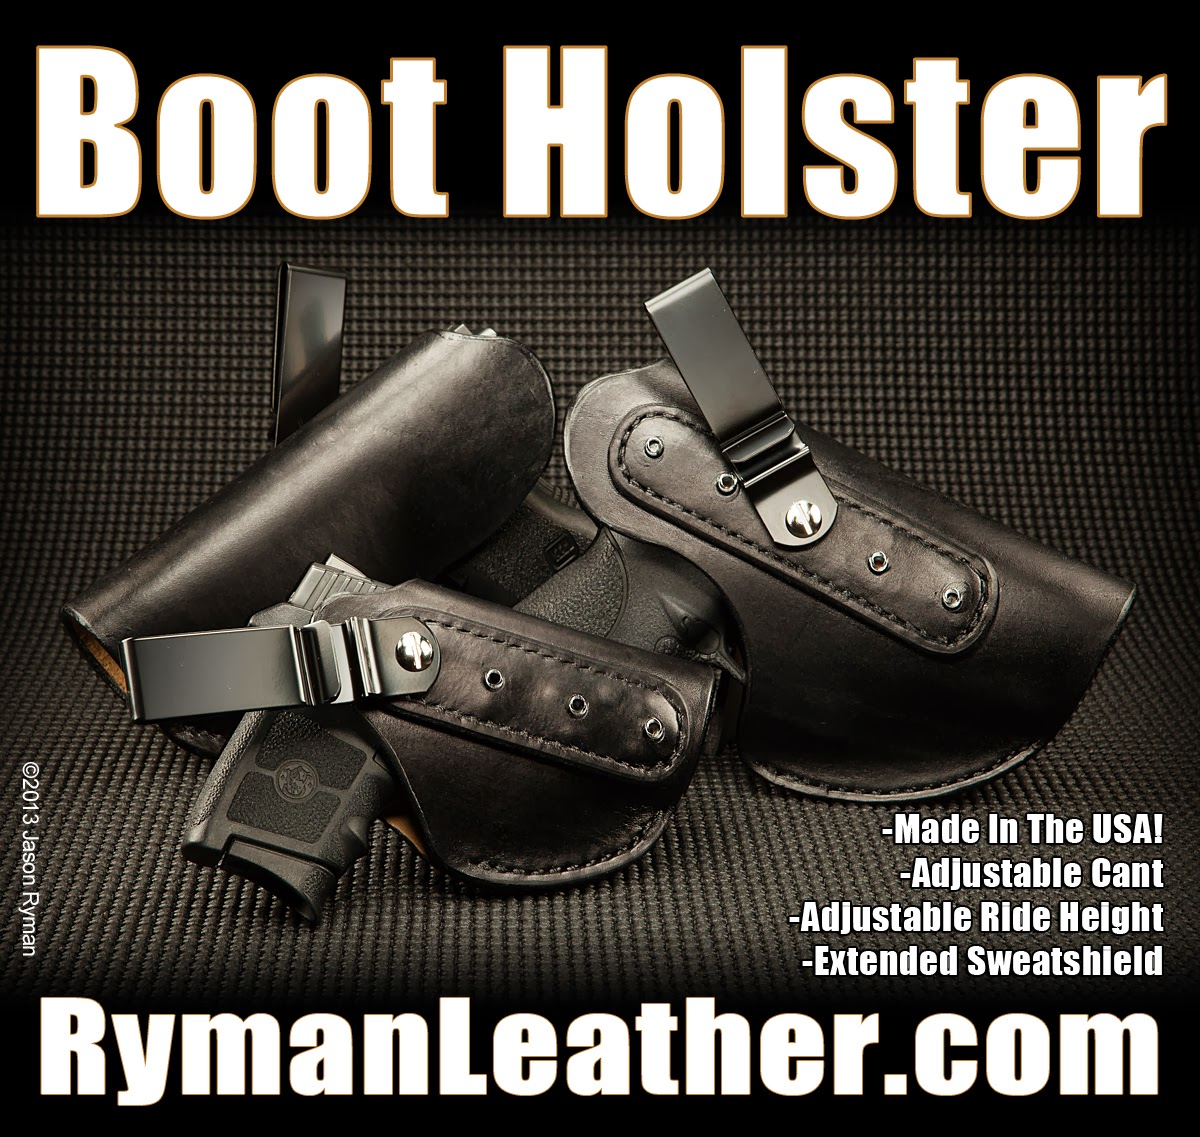 ankle holster, alternative, boot holster, iwb holster, concealment holster